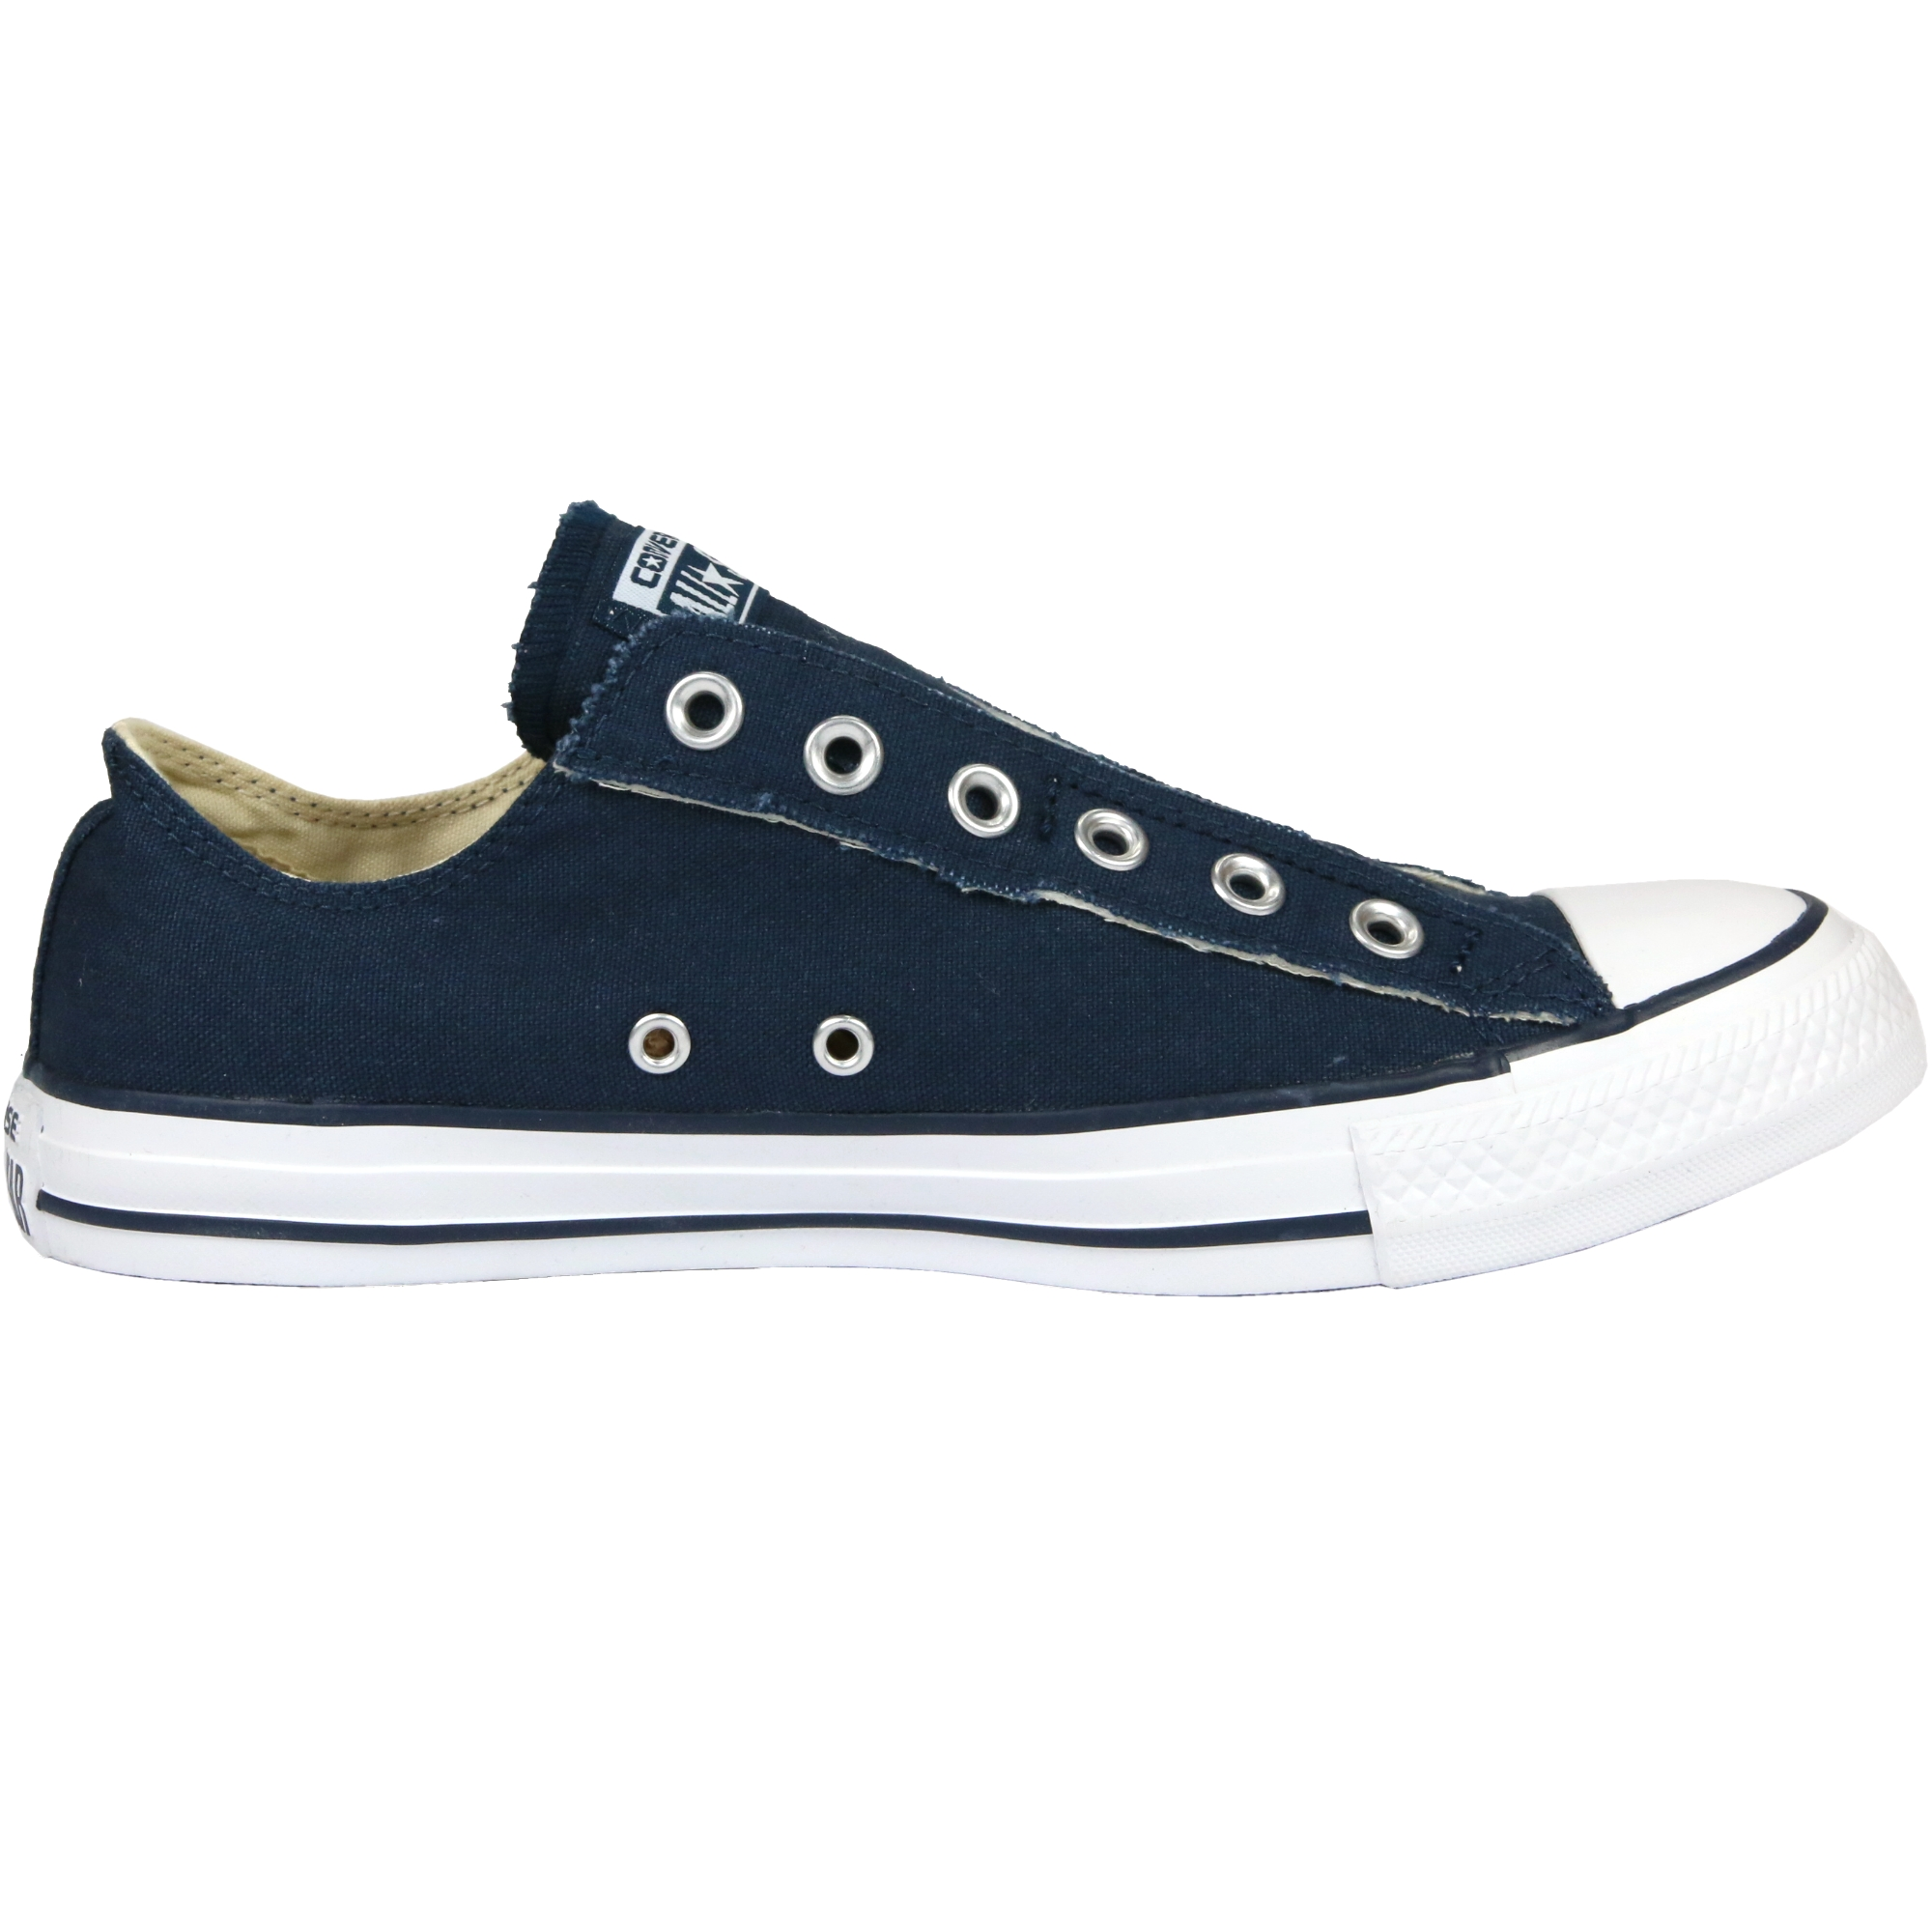 converse chucks damen grau clothing shoes accessories women 39 s shoes athletic neu converse. Black Bedroom Furniture Sets. Home Design Ideas